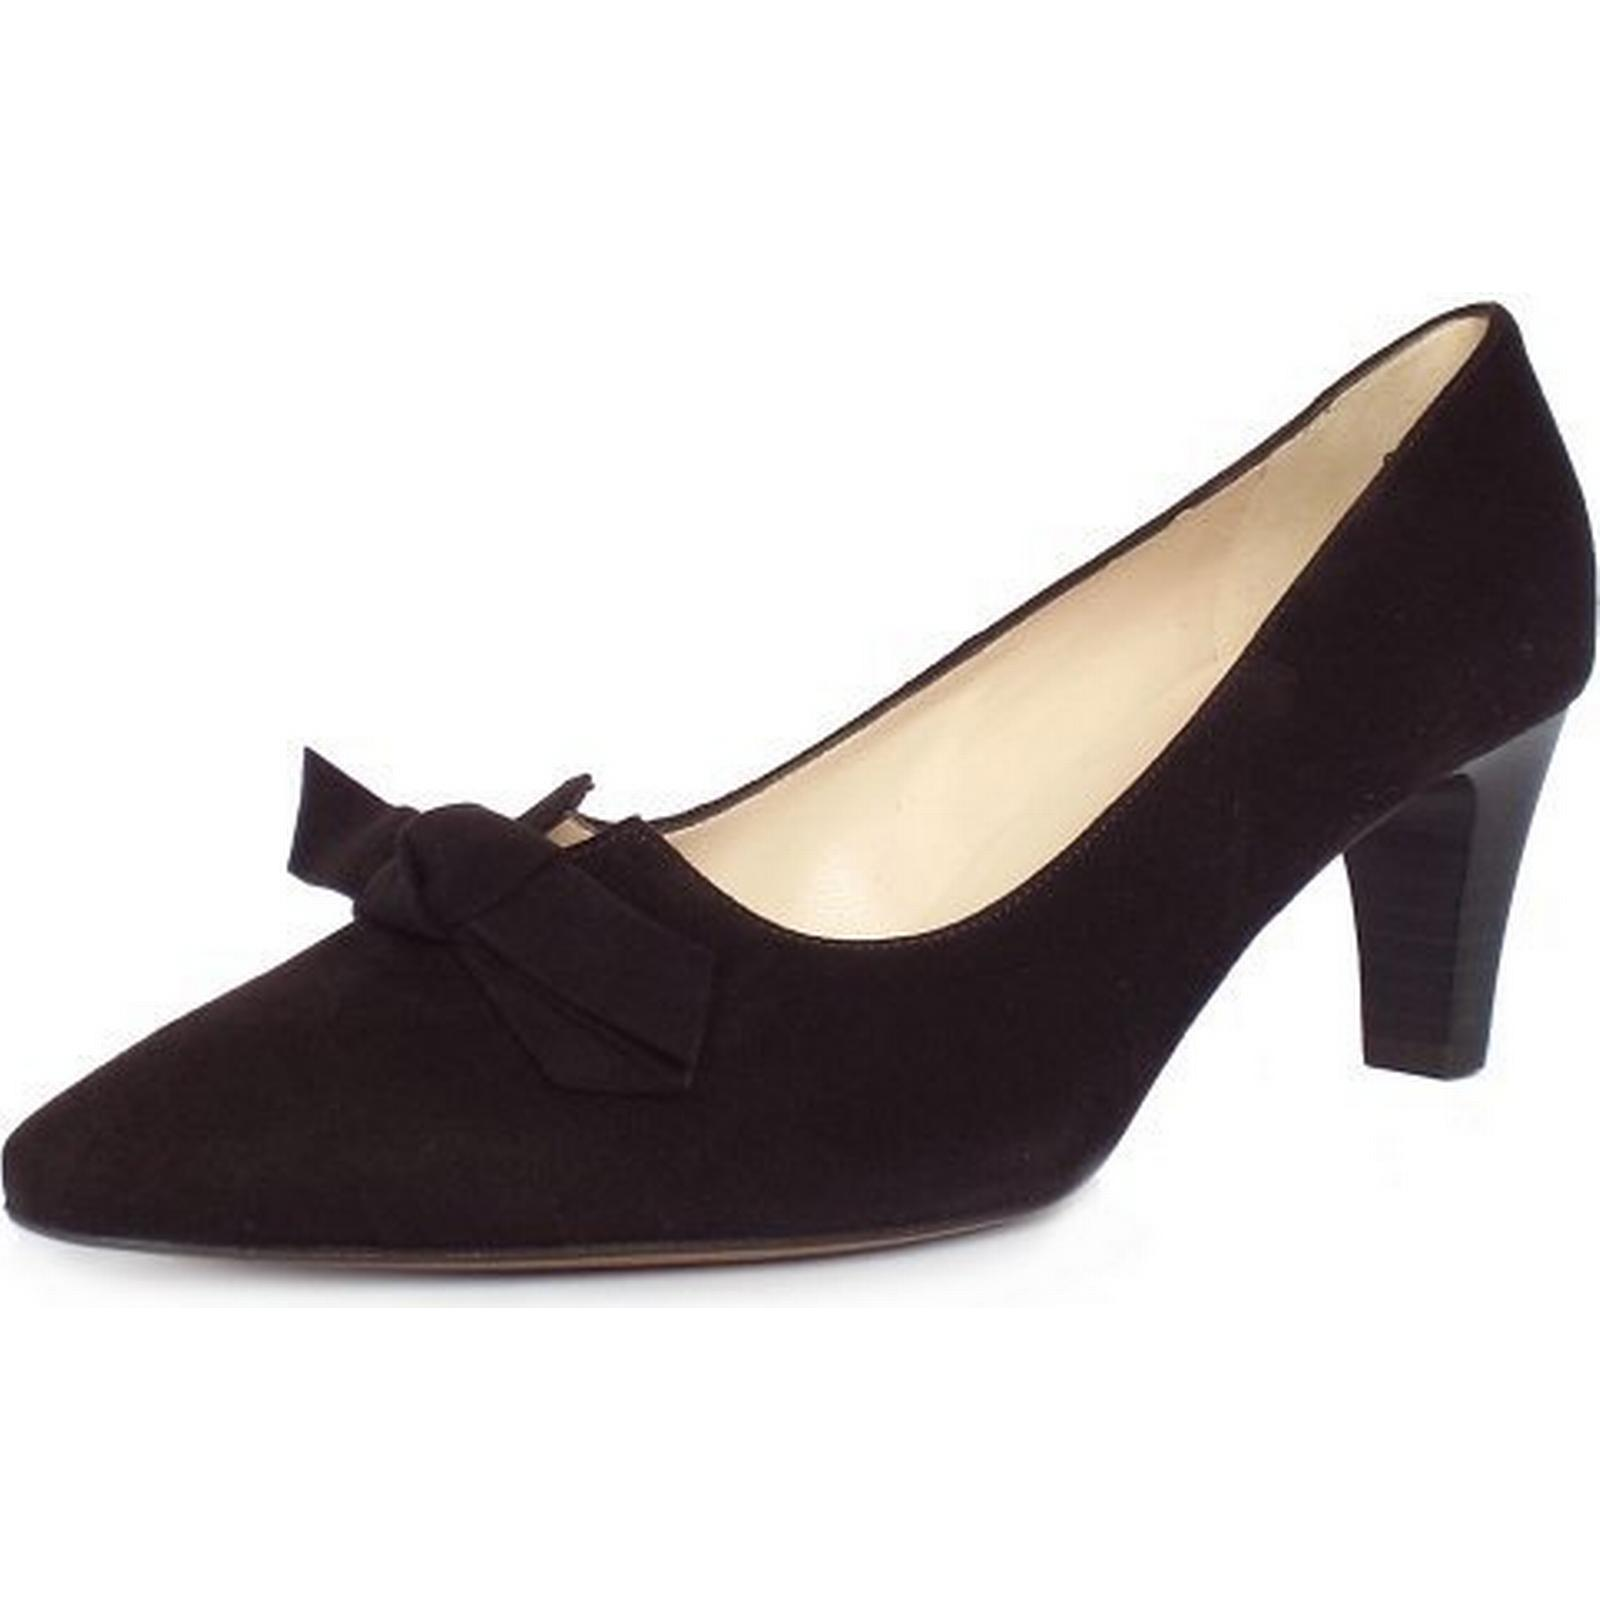 Peter Kaiser LEOLA LEOLA Kaiser PETER KAISER LADIES SHOES LEOA Size: 7.5, Colour: N 9de54b